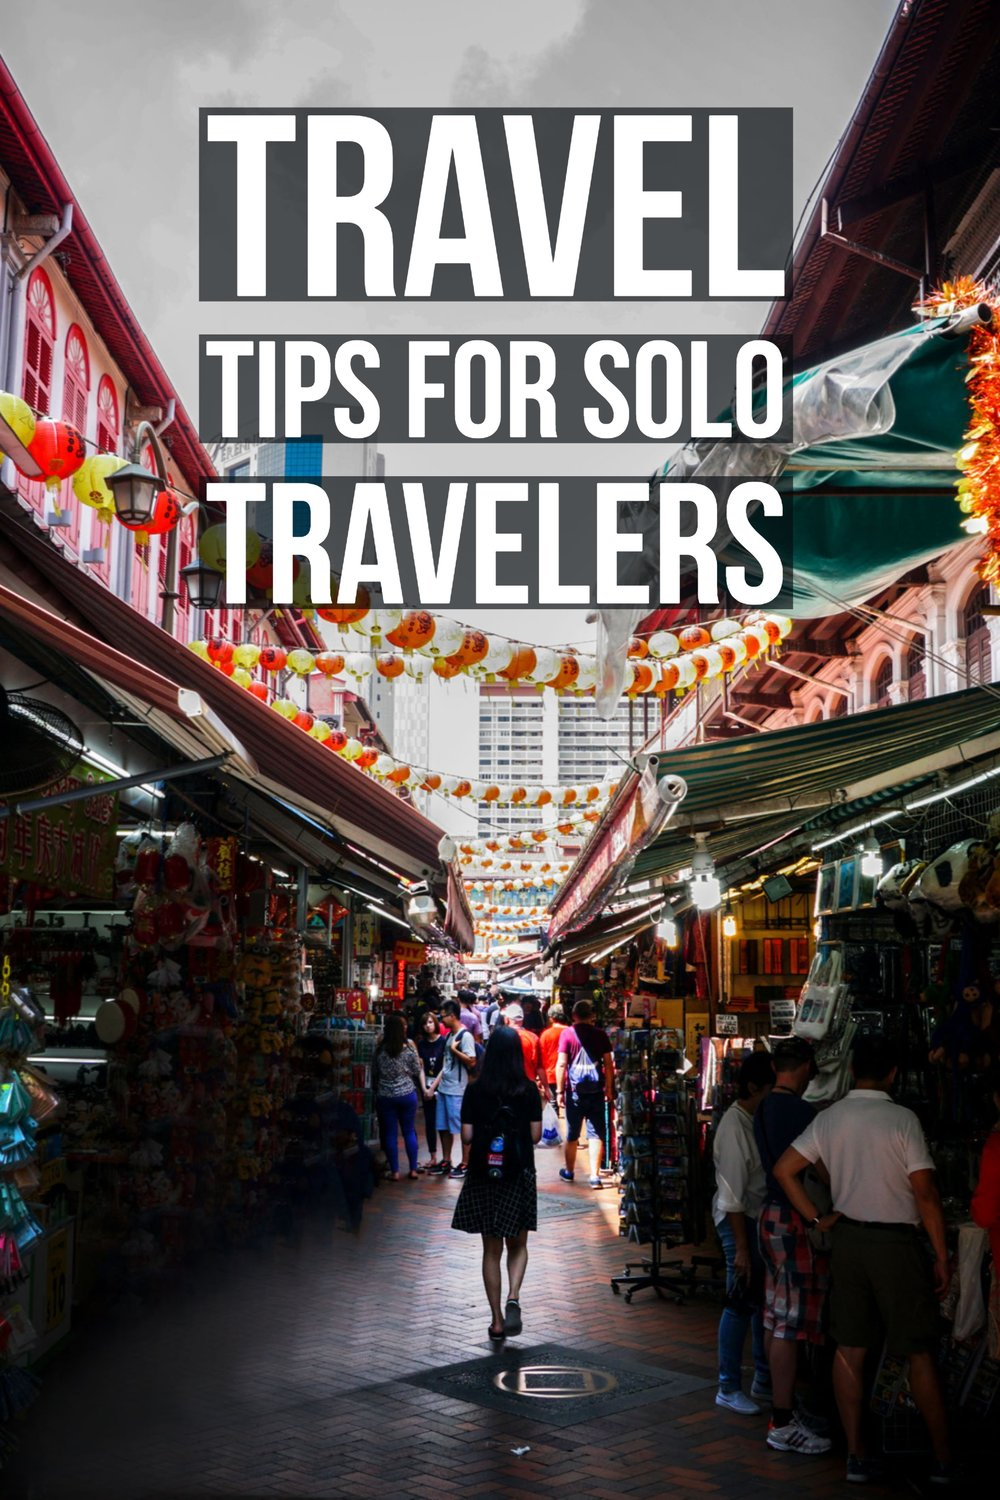 solo travel tips.jpg